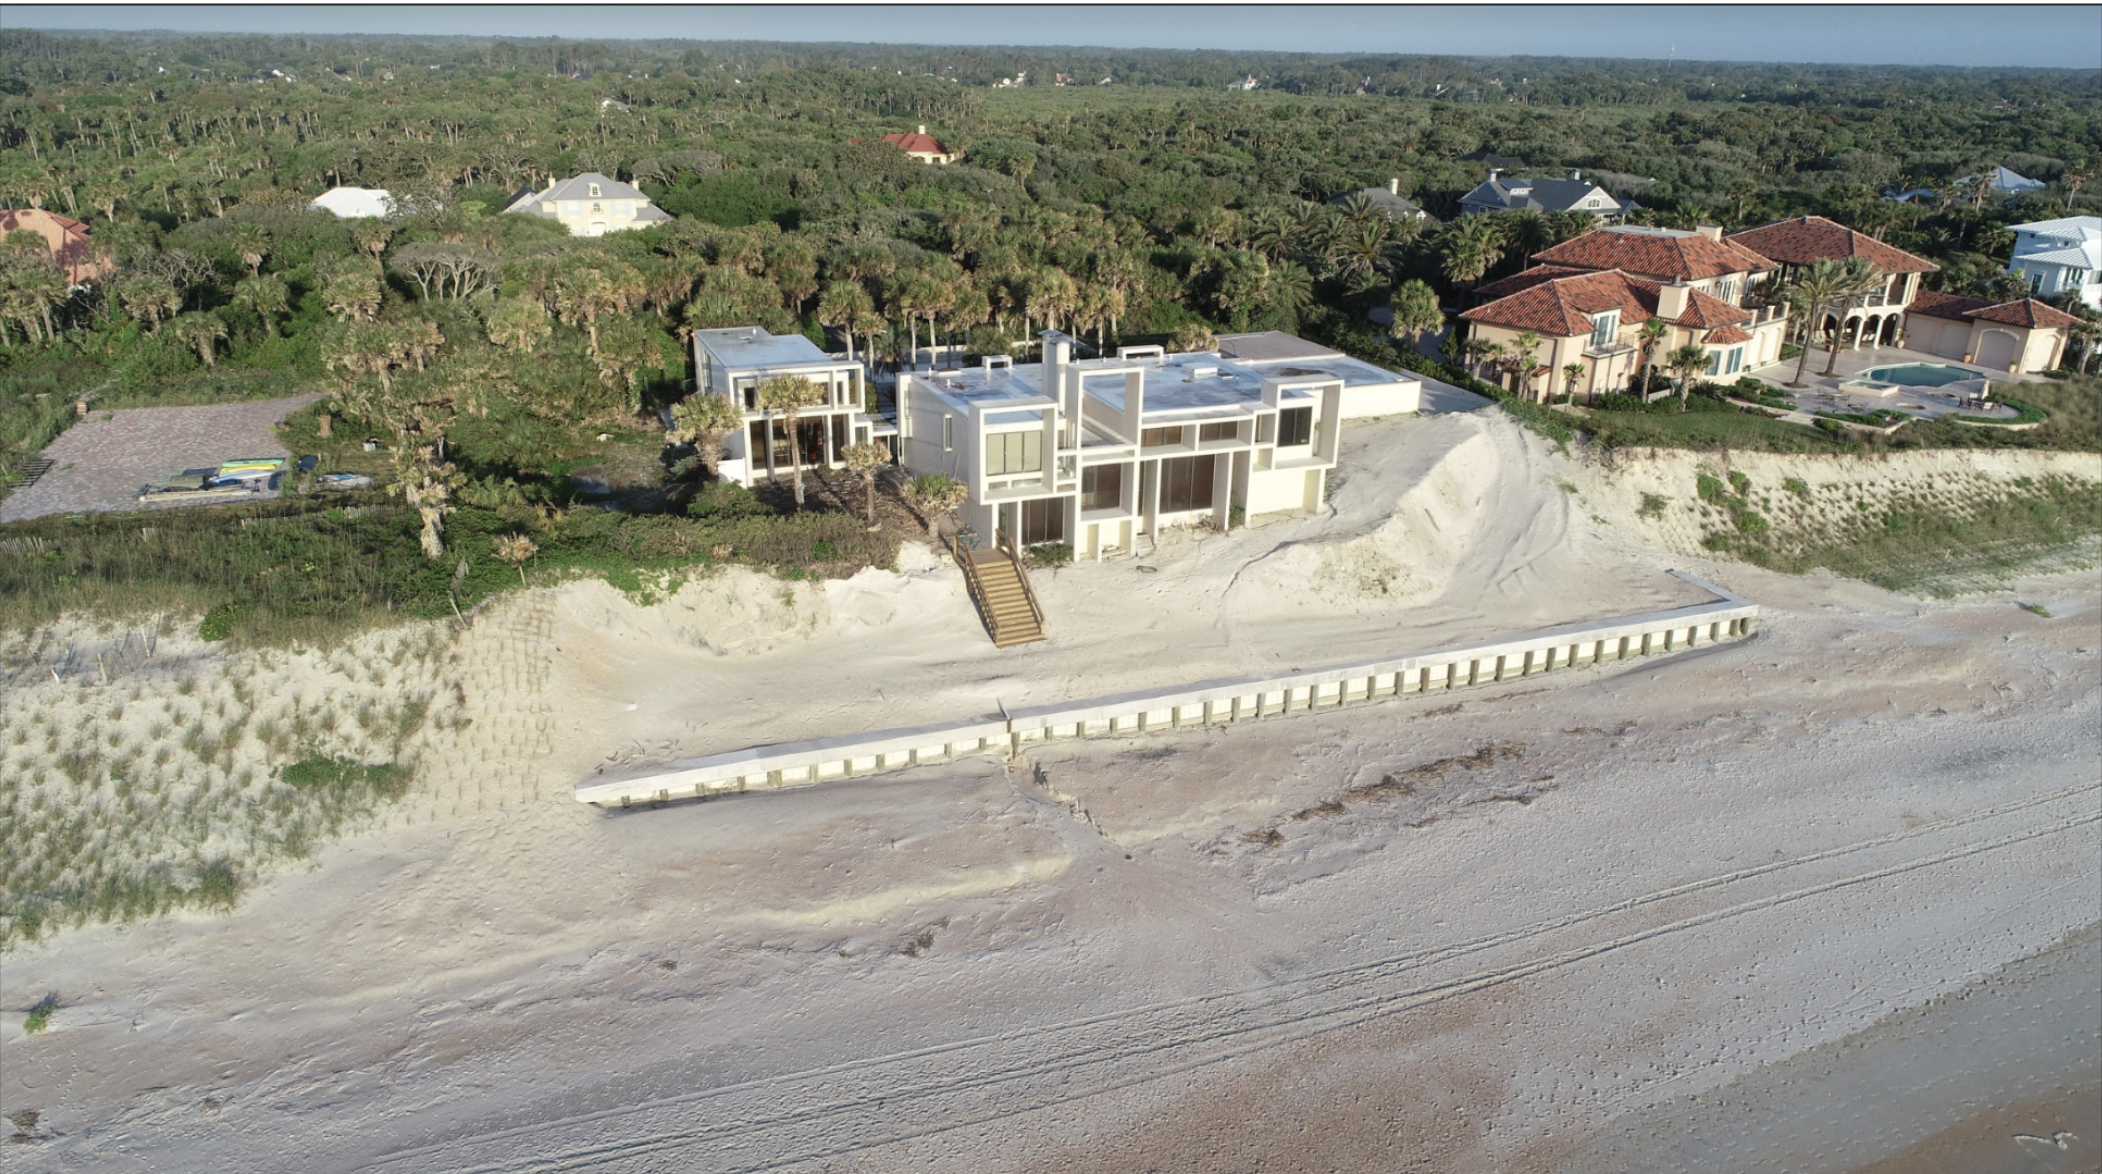 Aerial View of the Milam Residence